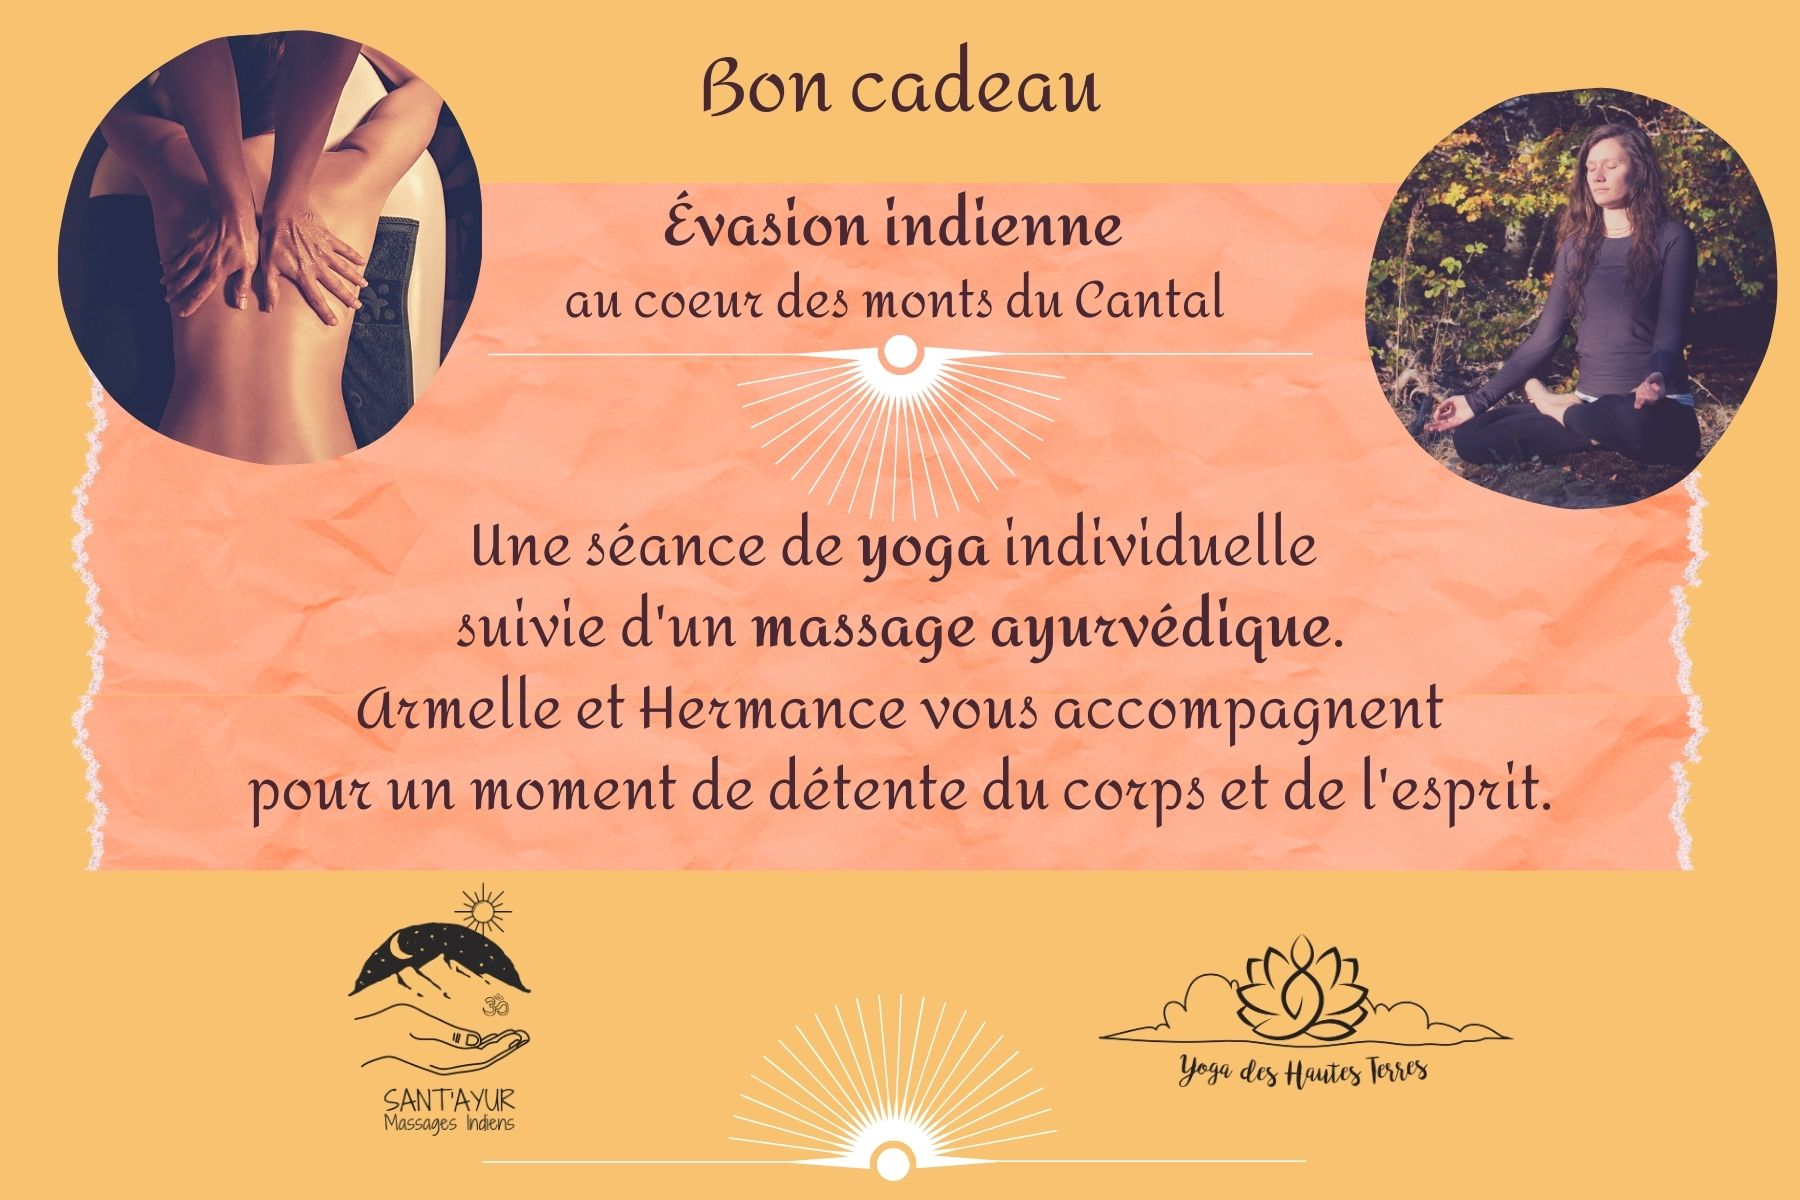 Carte Cadeau CANTAL Yoga & Massage ~ Evasion Indienne